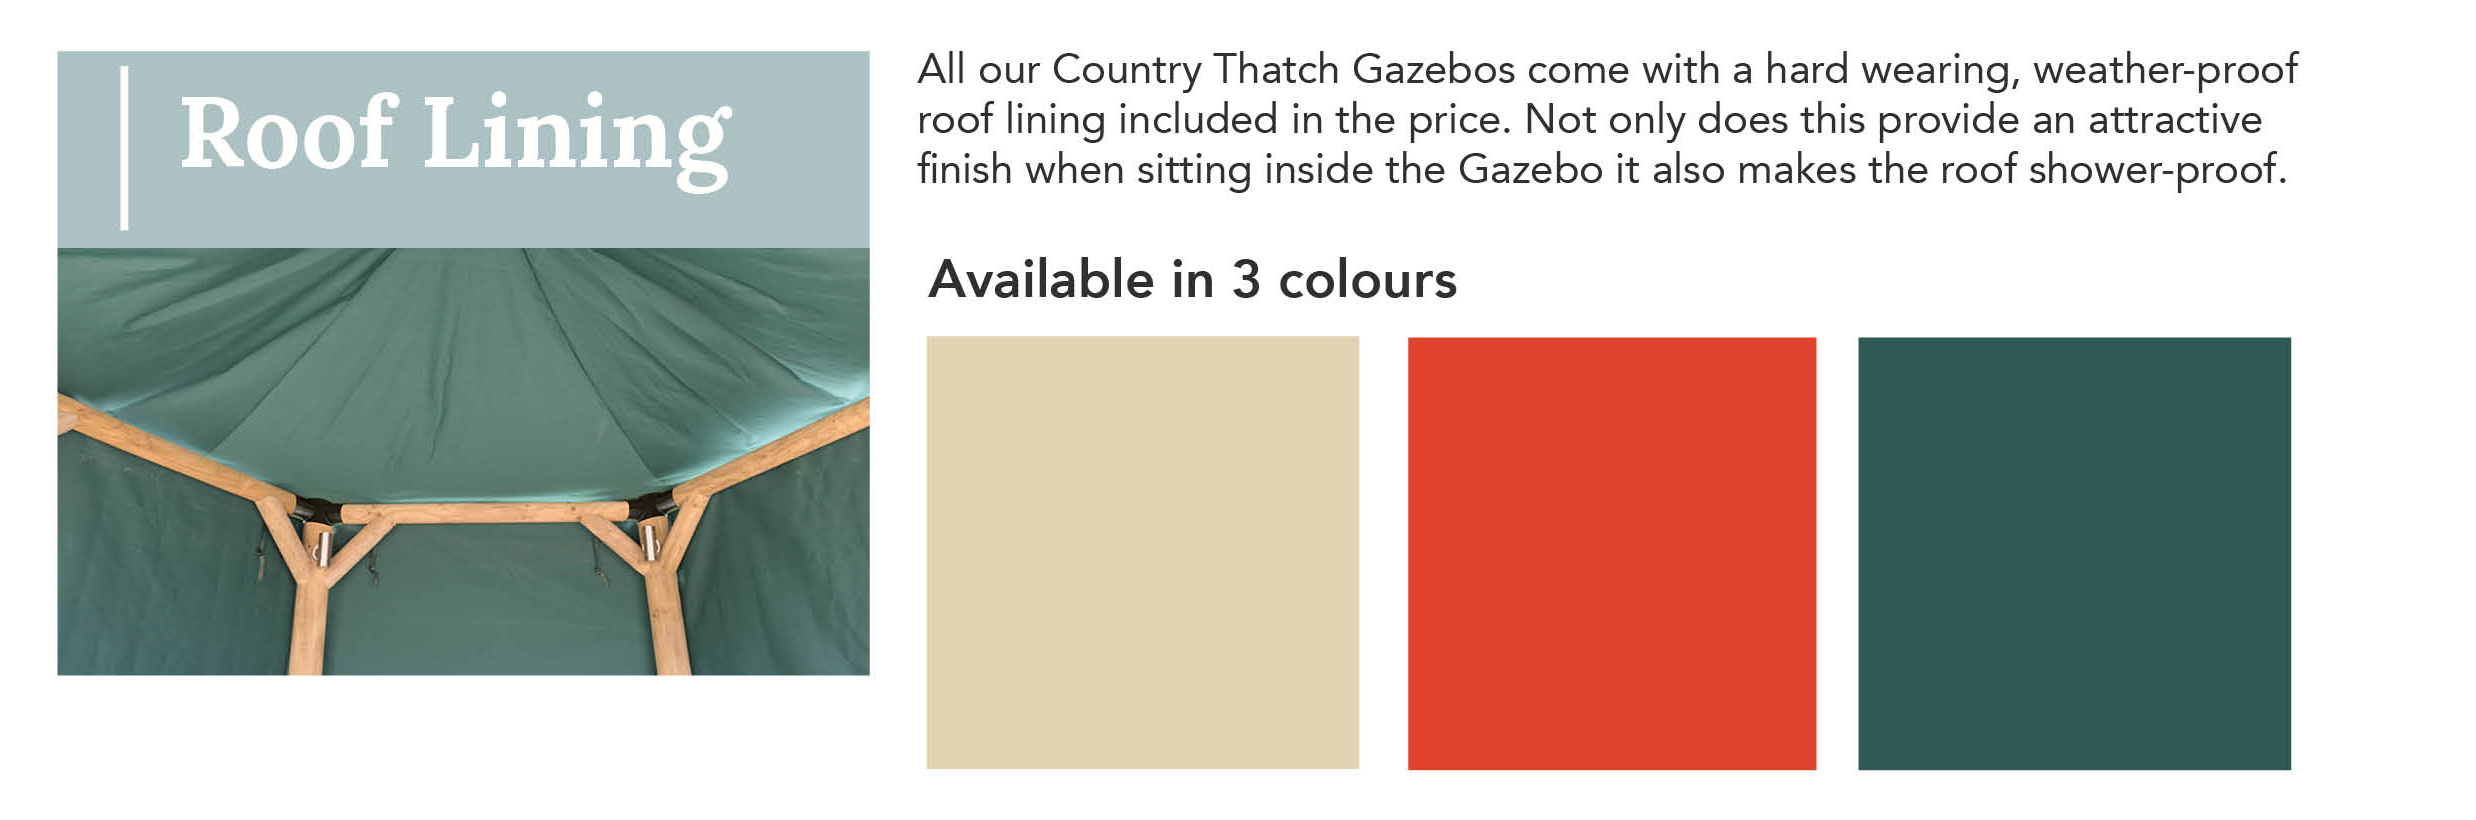 Gazebo Country Thatch Roof Lining Colours